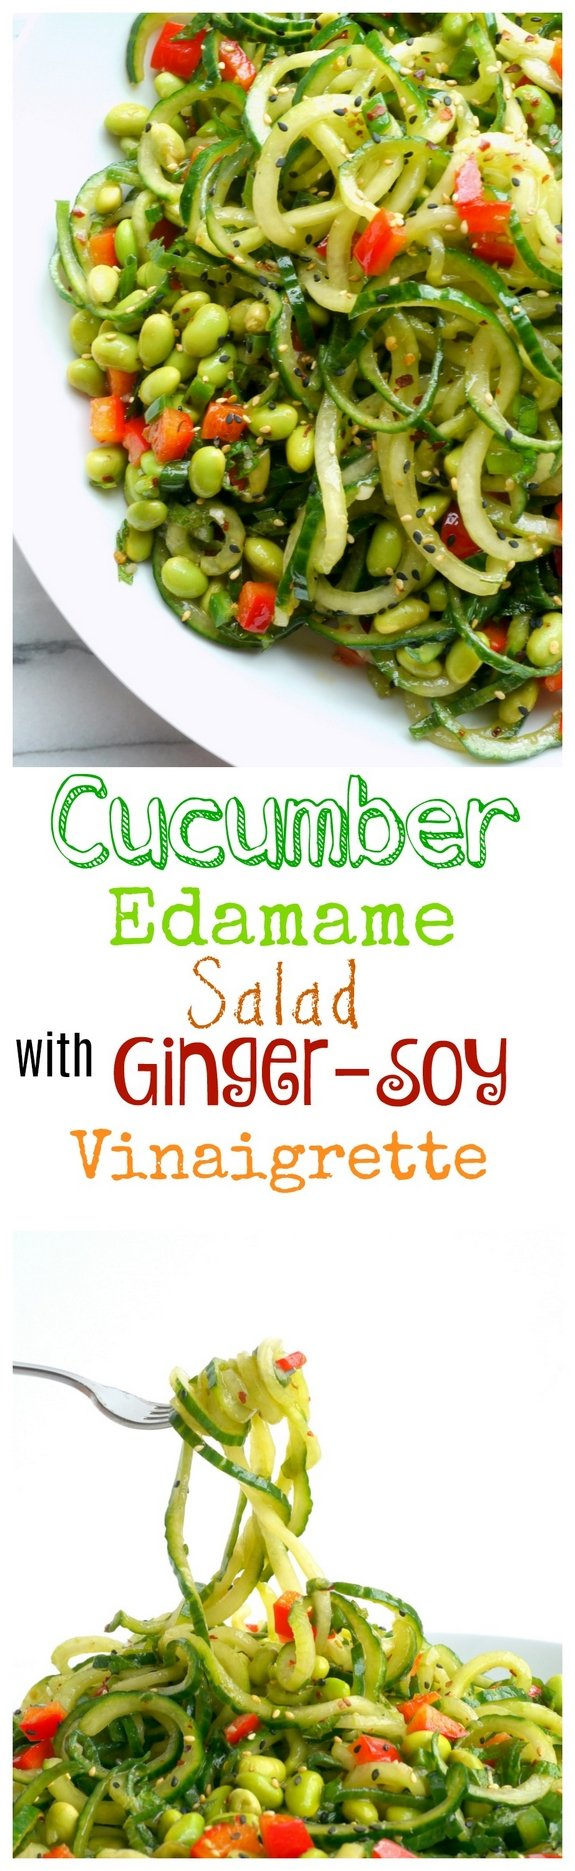 Cucumber Edamame Salad with Ginger-Soy Vinaigrette in text and two photos of the salad itself.